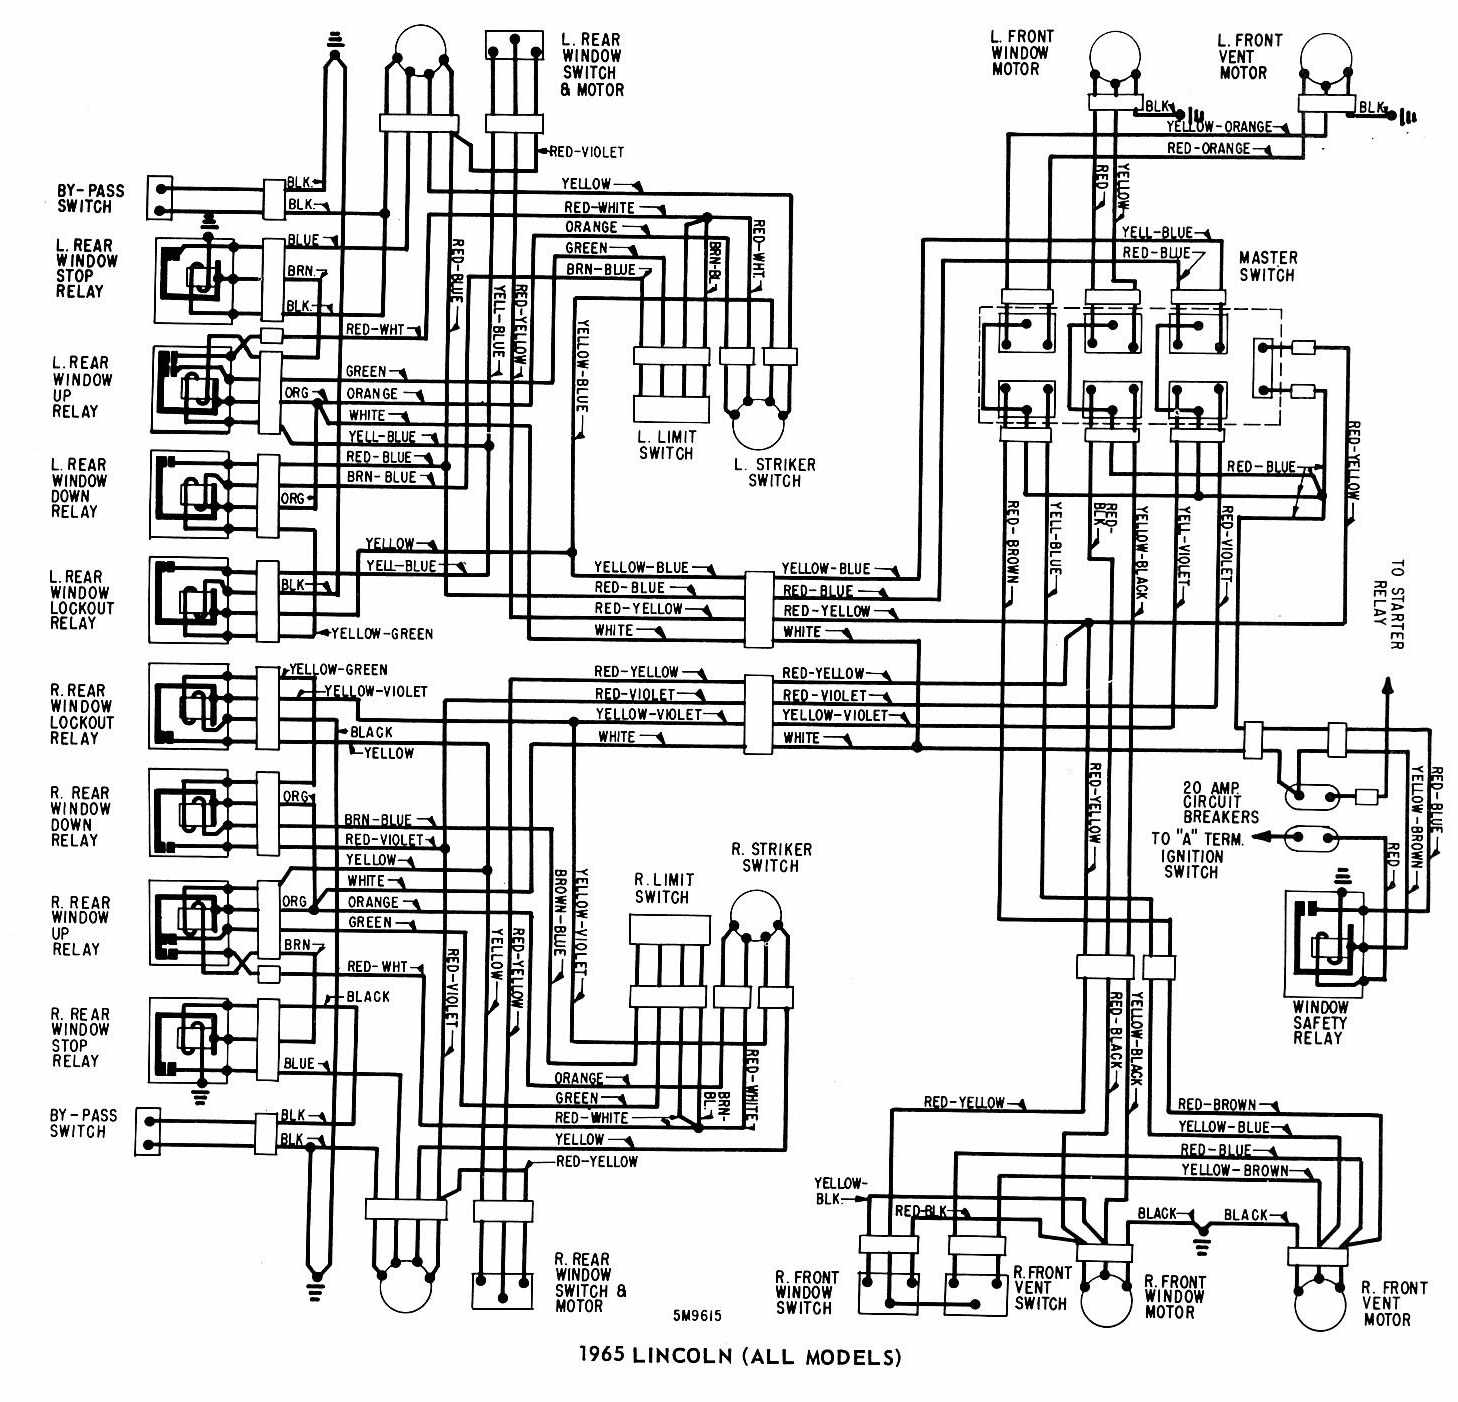 1962 lincoln convertible top wiring diagram